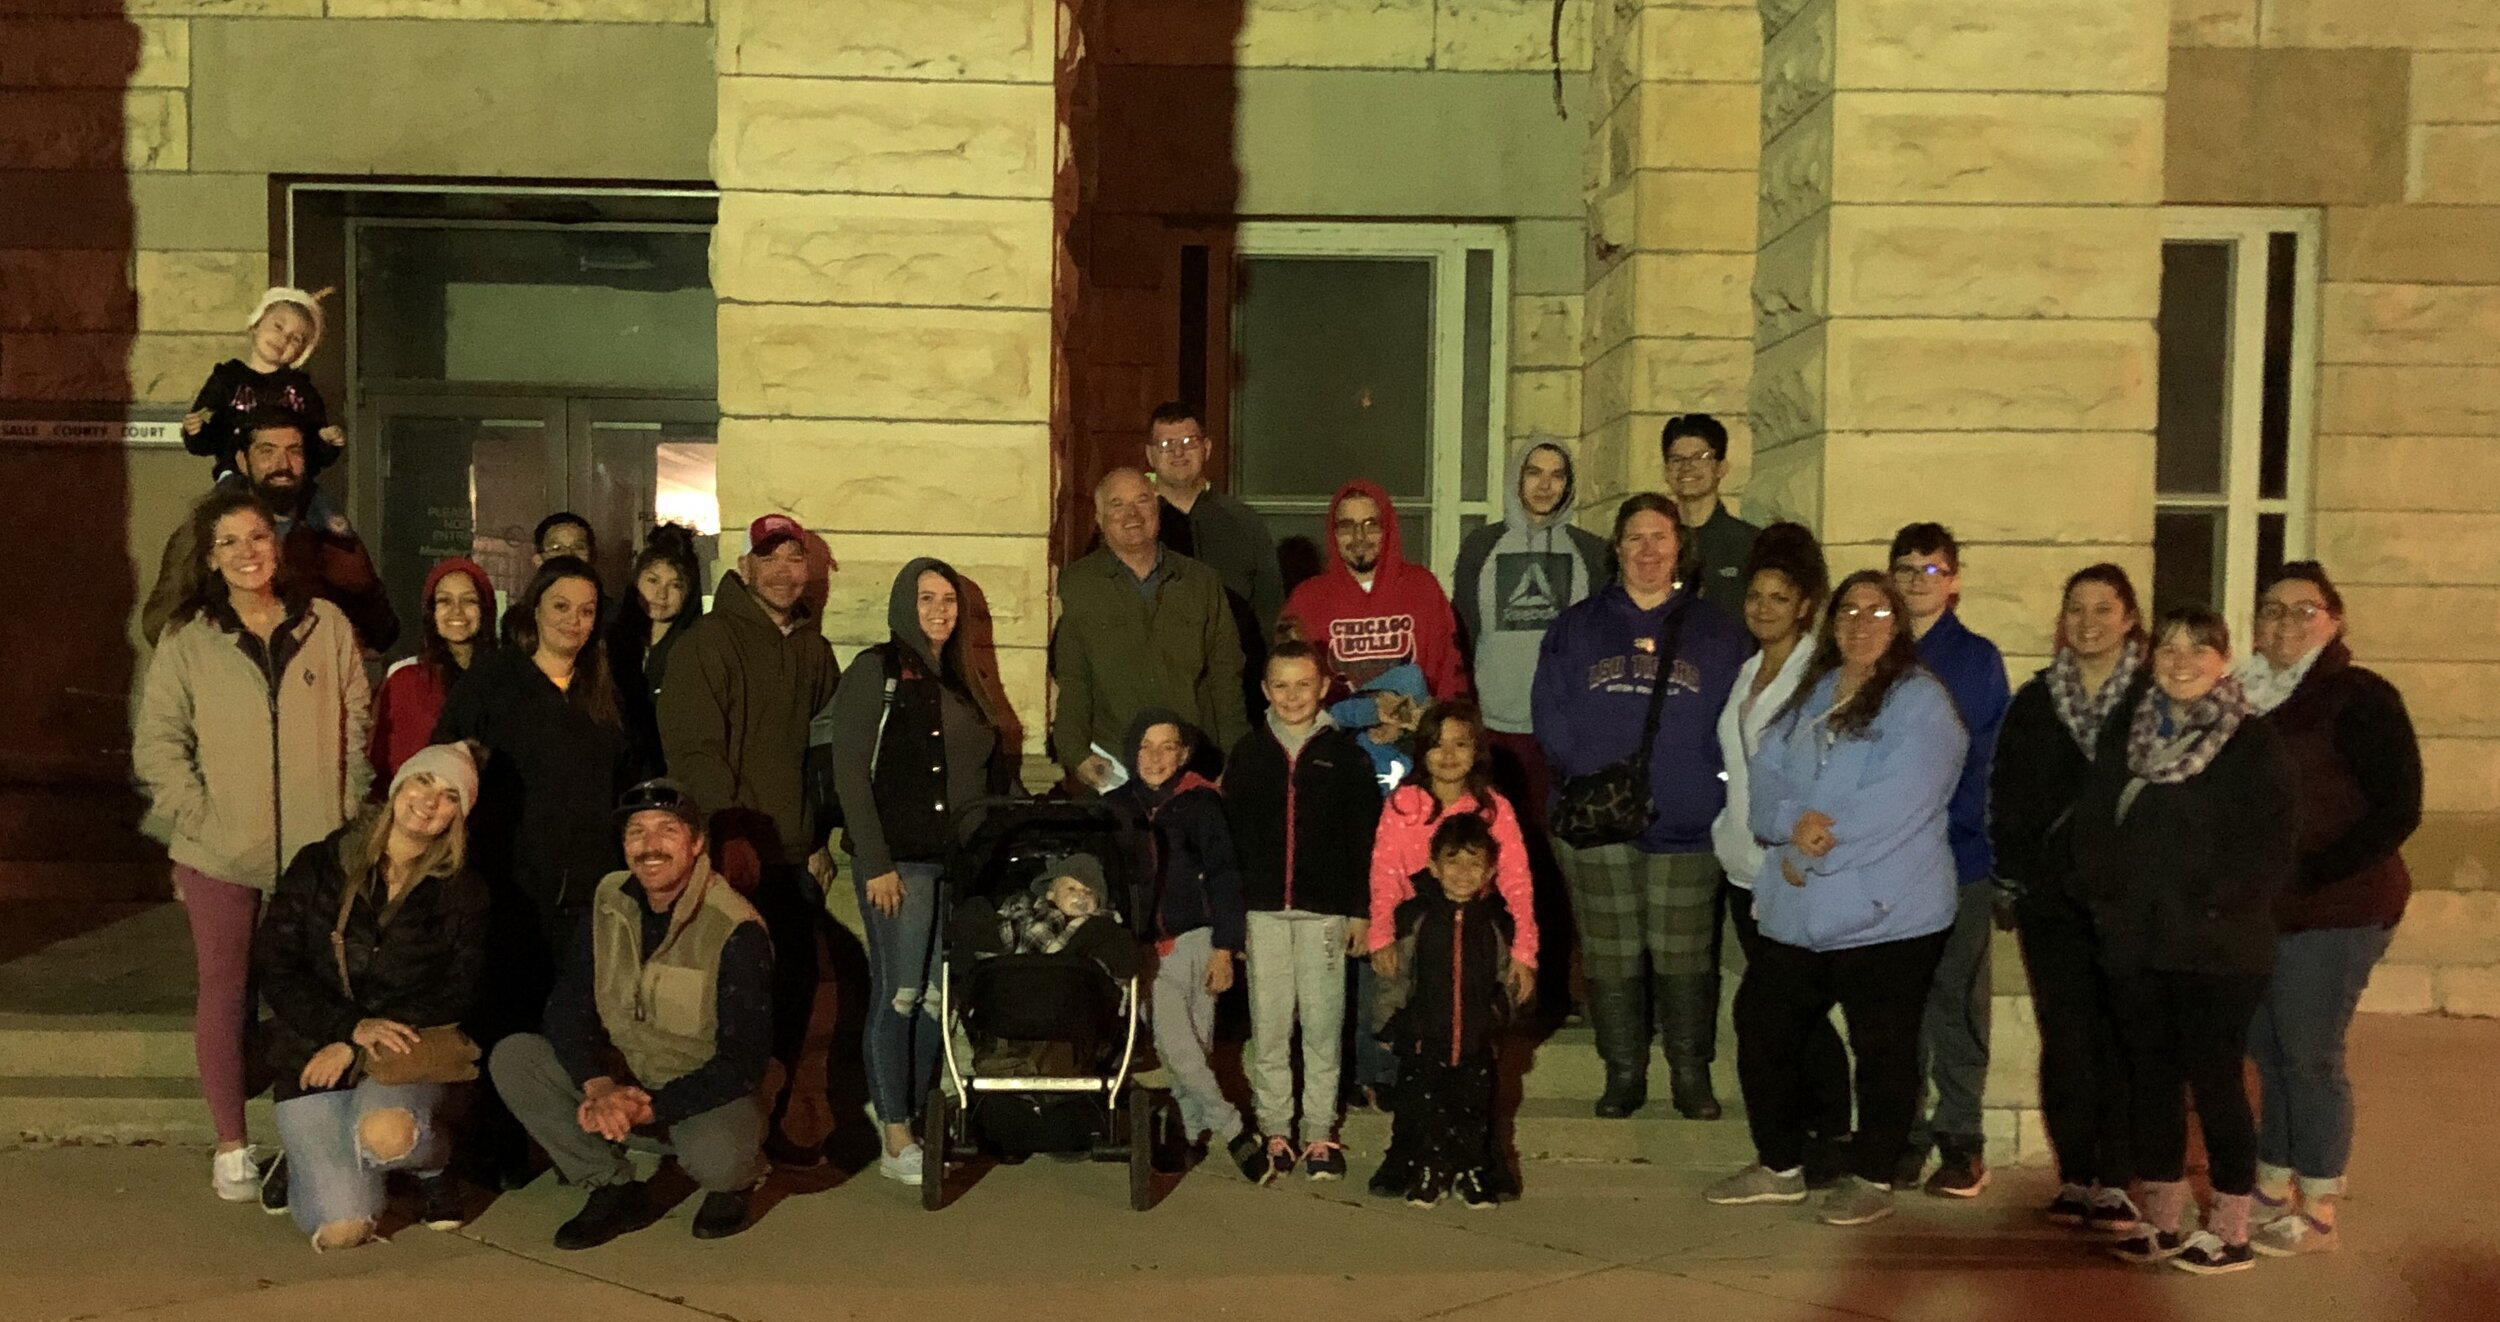 We had a great group for friends and family night on the Haunted Ottawa History Tour